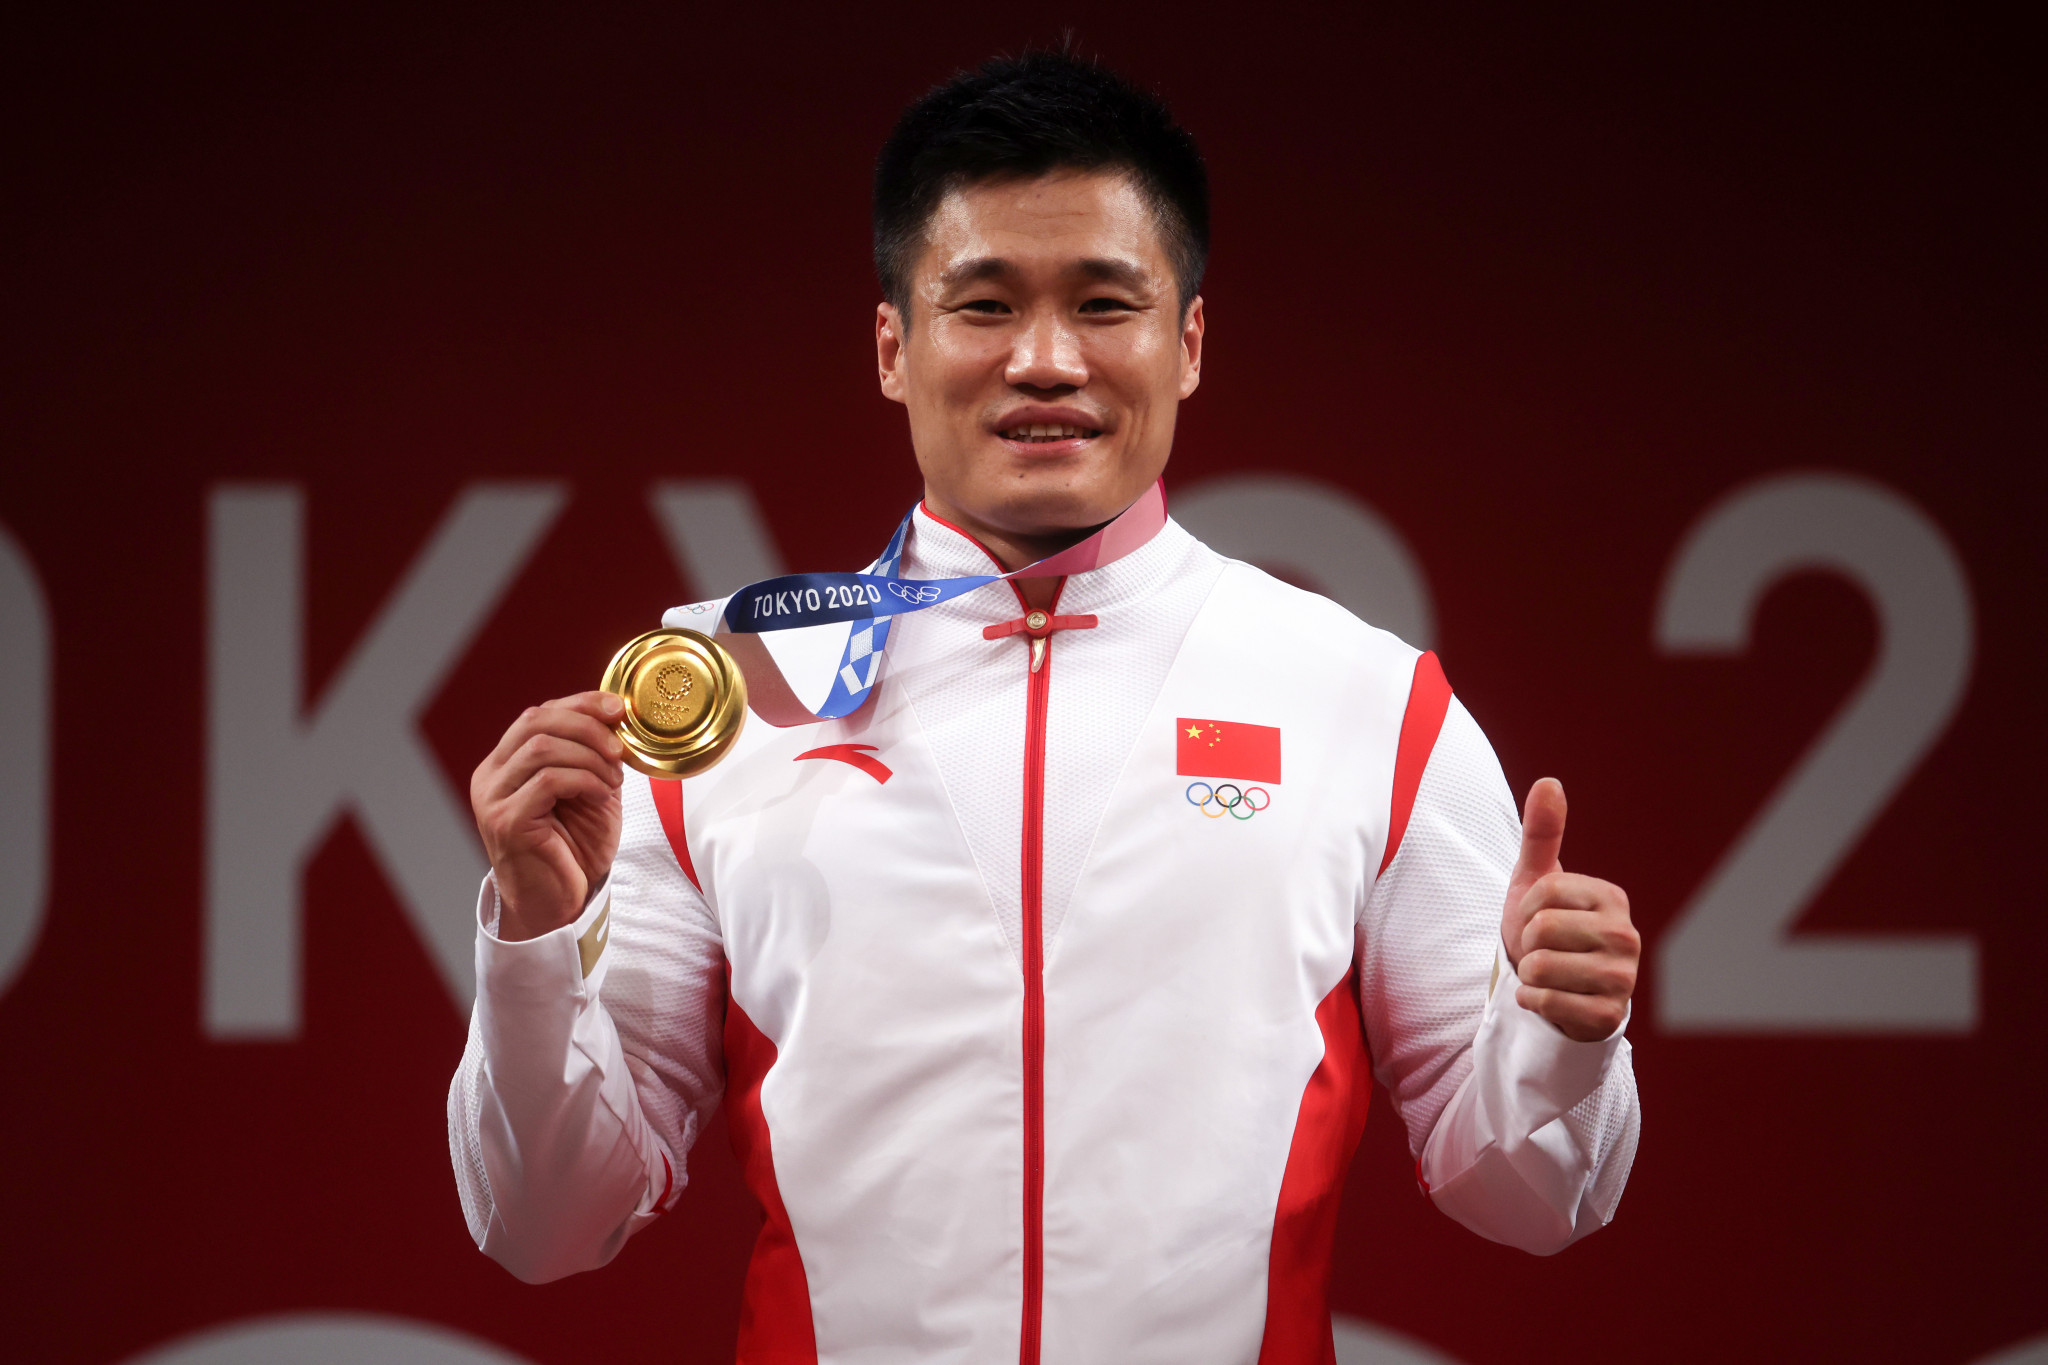 Weightlifter Lu Xiaojun joins all-time greats with another Tokyo 2020 gold for China - aged 37